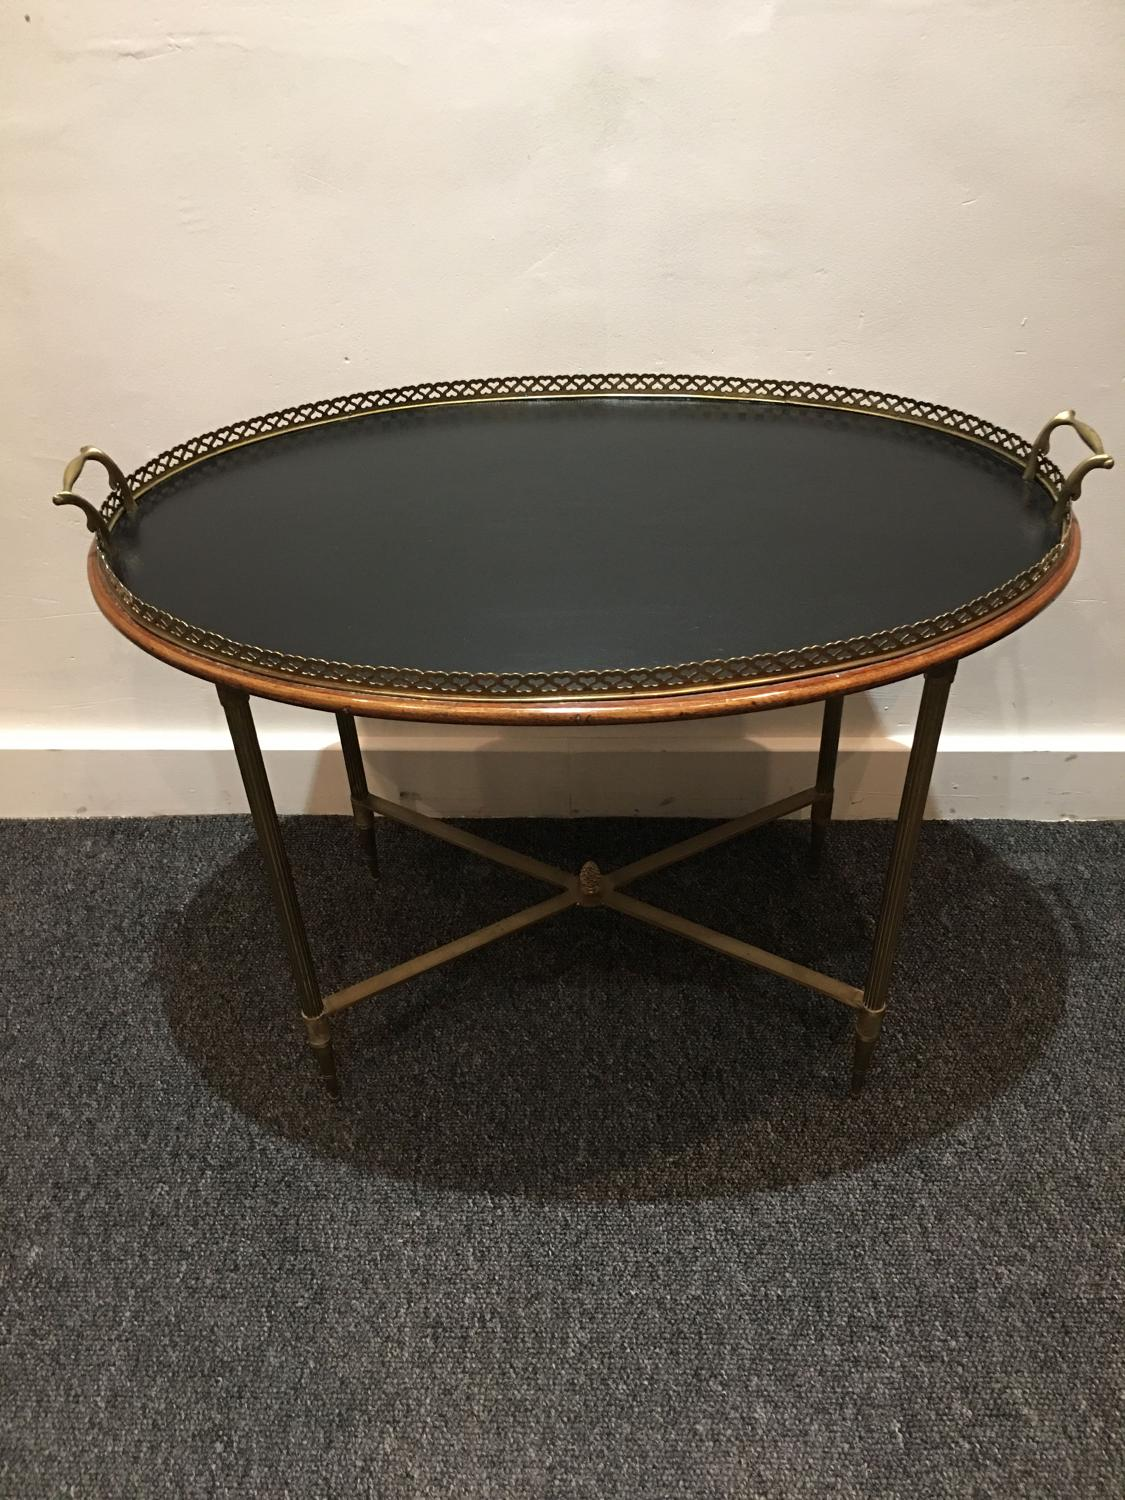 A brass fixed tray table